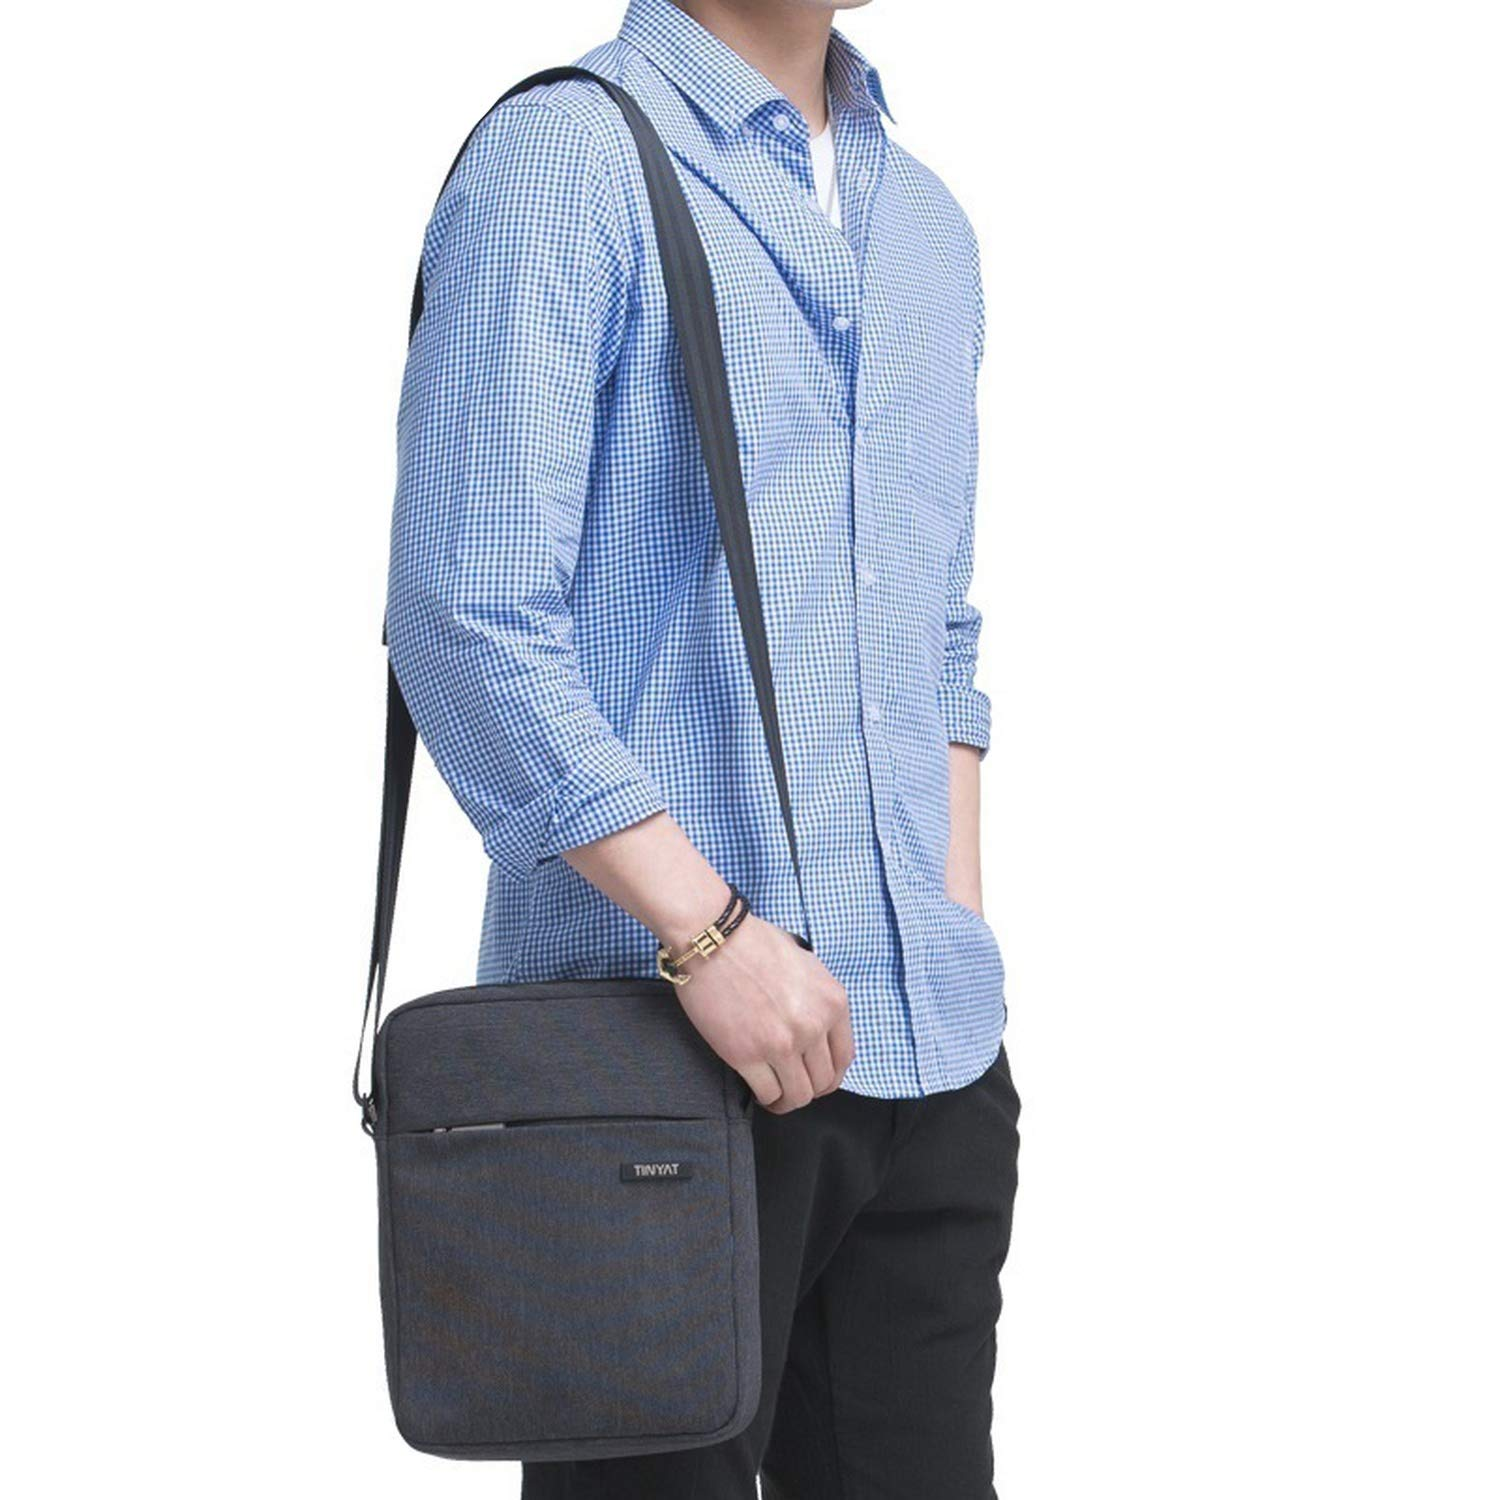 Shockproof MenS Crossbody Bag Pack Hidden Zipper Shoulder Bags For 9.7 Pad Male Canvas Bags